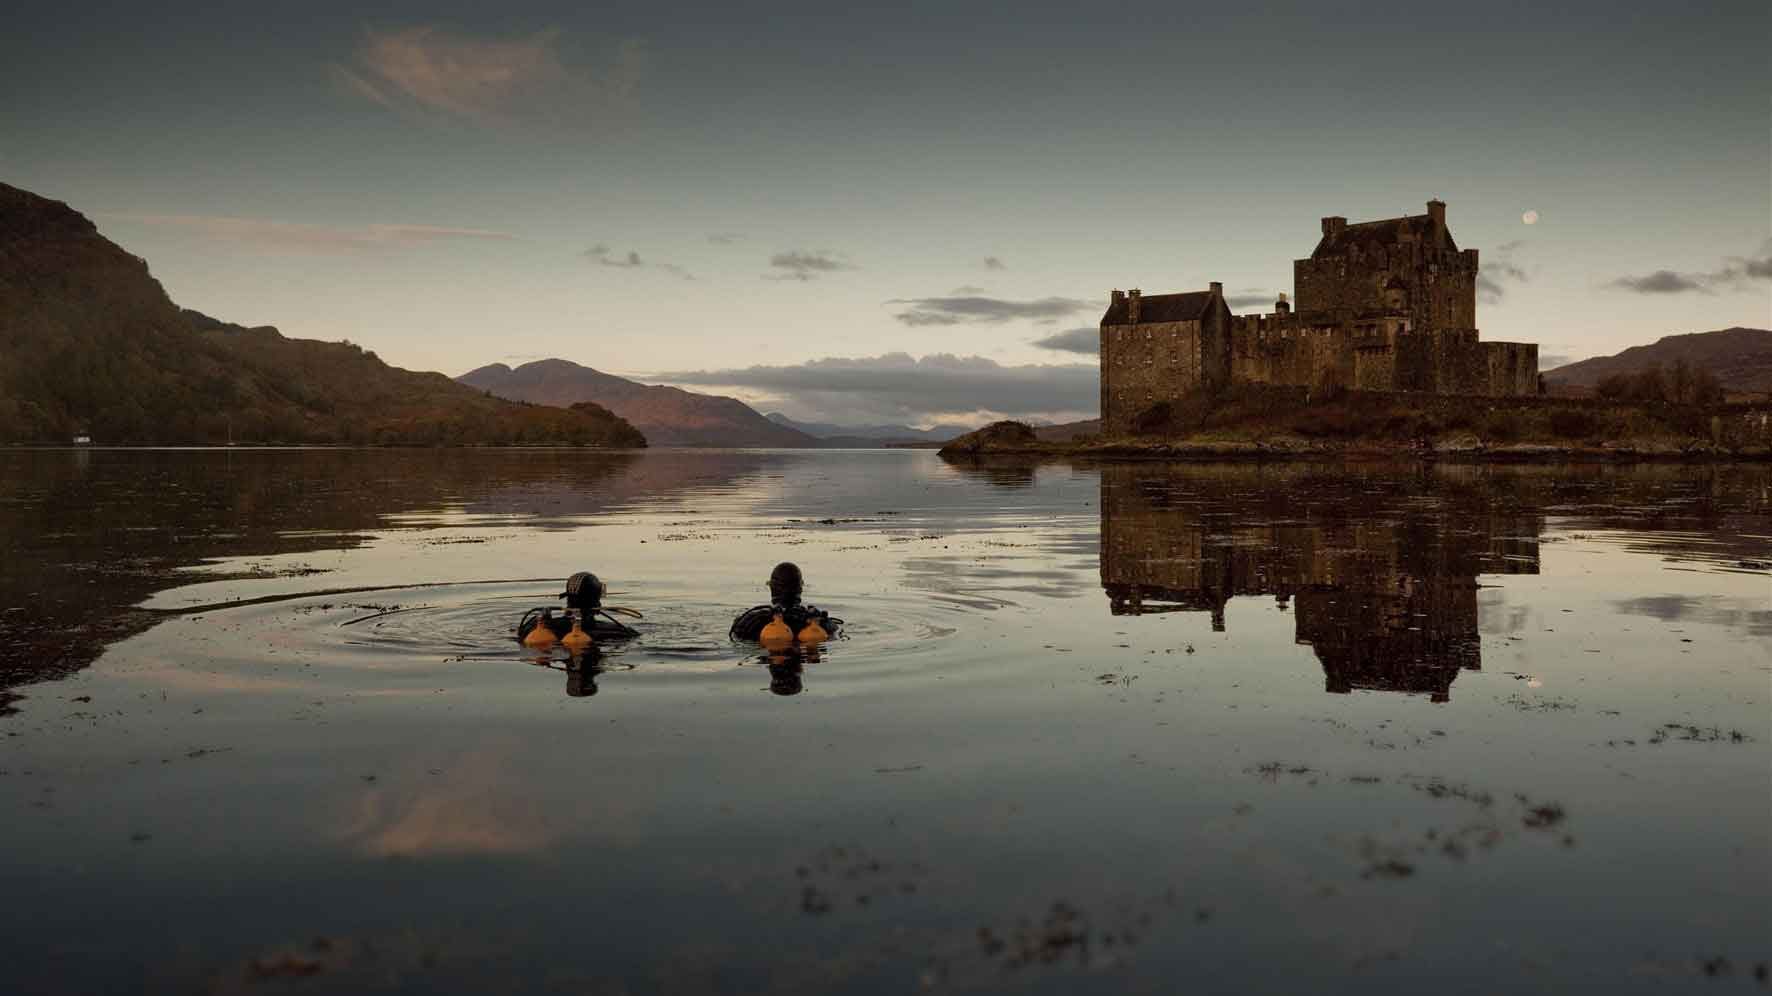 EilanDonan Castle - one of the most iconic images of Scotland